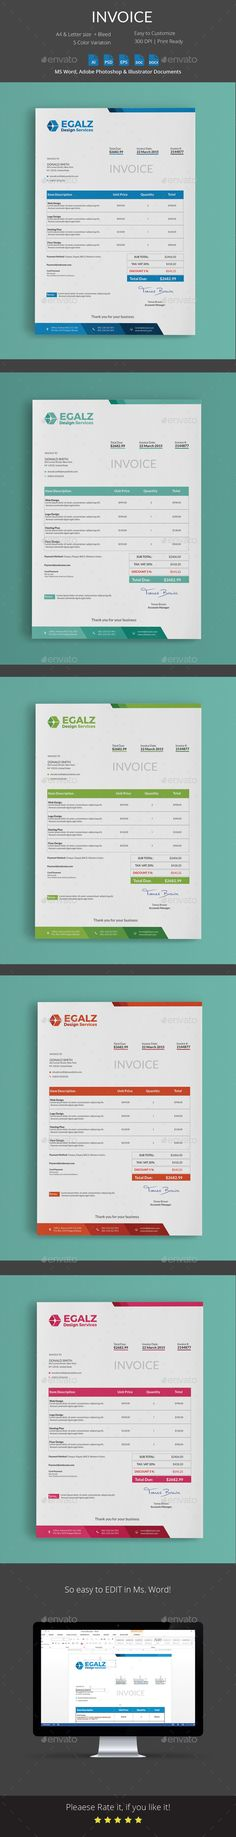 60 best Invoice Template Designs Download images on Pinterest     Invoice by Butterfly Graphic Invoice  Use this template for personal   company and business invoicing very quick and easy  This invoice template  is designed